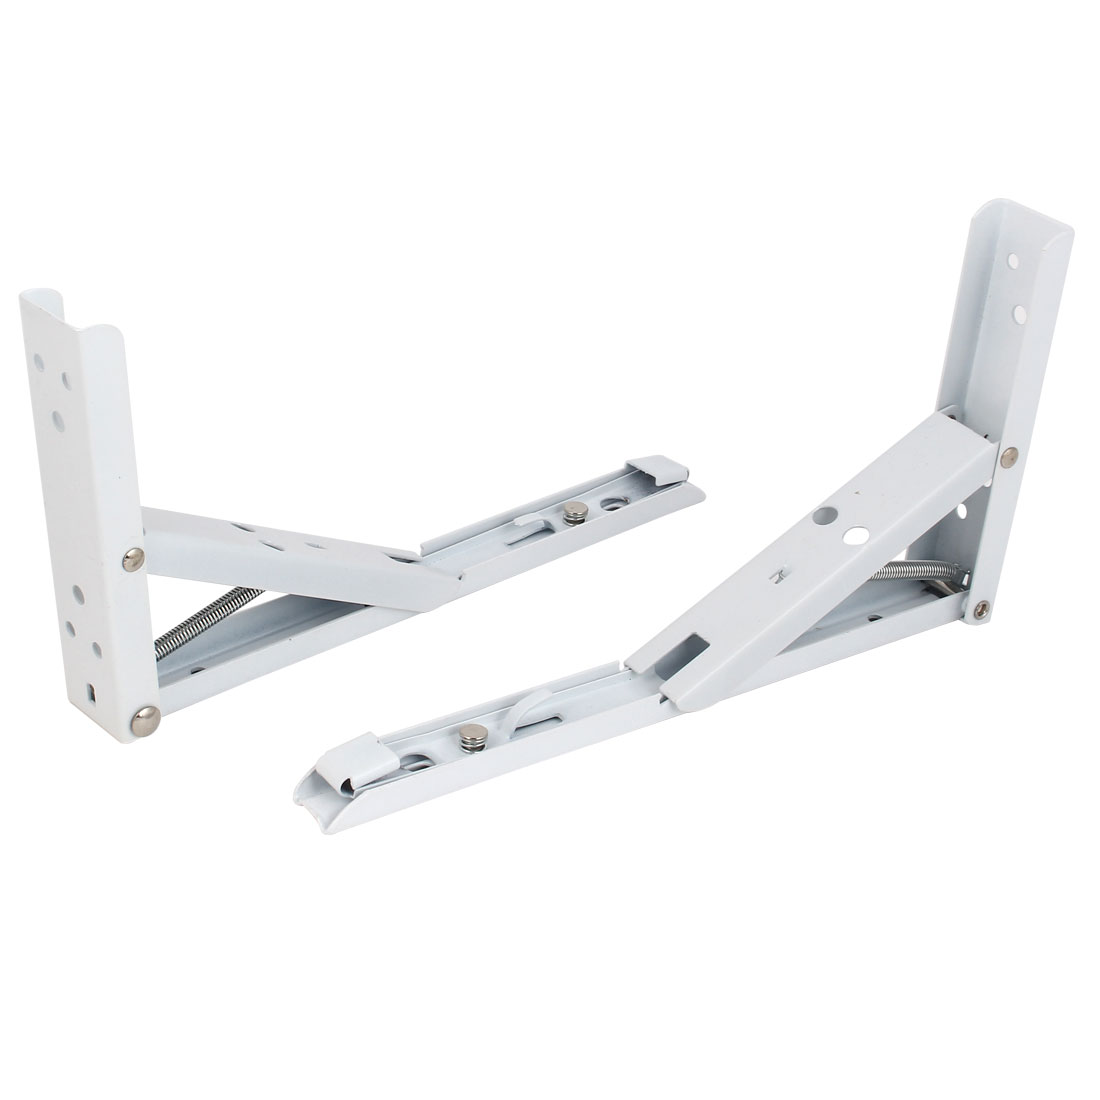 "2pcs 90 Degree Spring Loaded Folding Support Shelf Bracket 10"" Long"